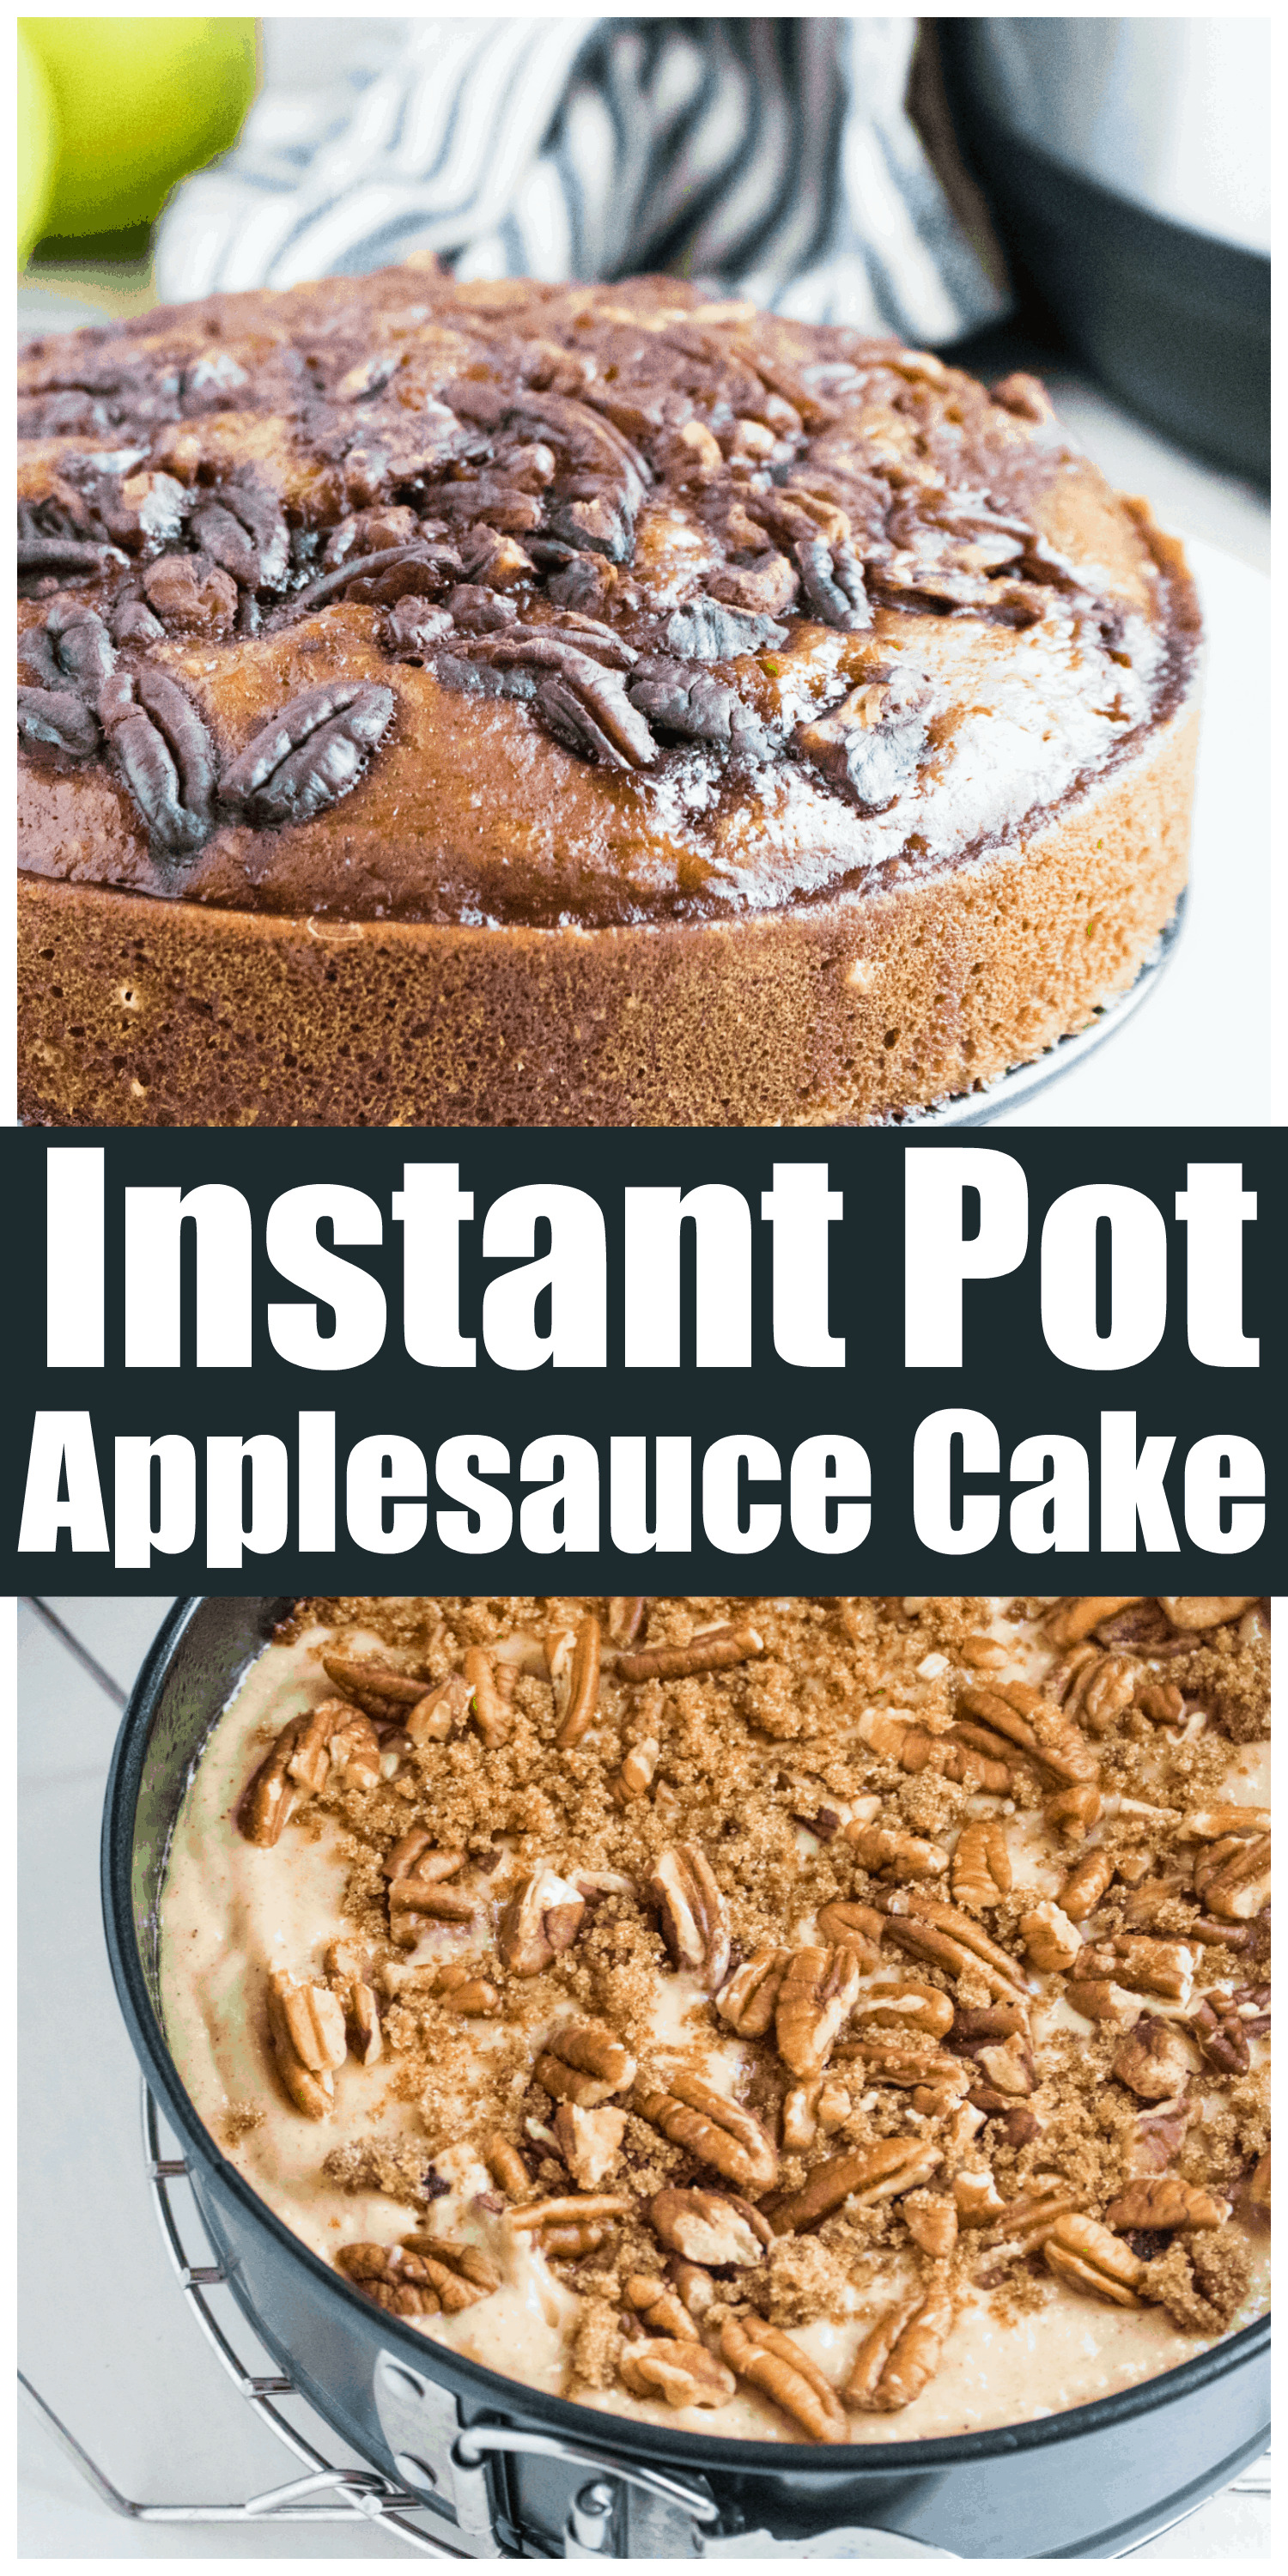 Instant Pot Old Fashioned Applesauce Cake